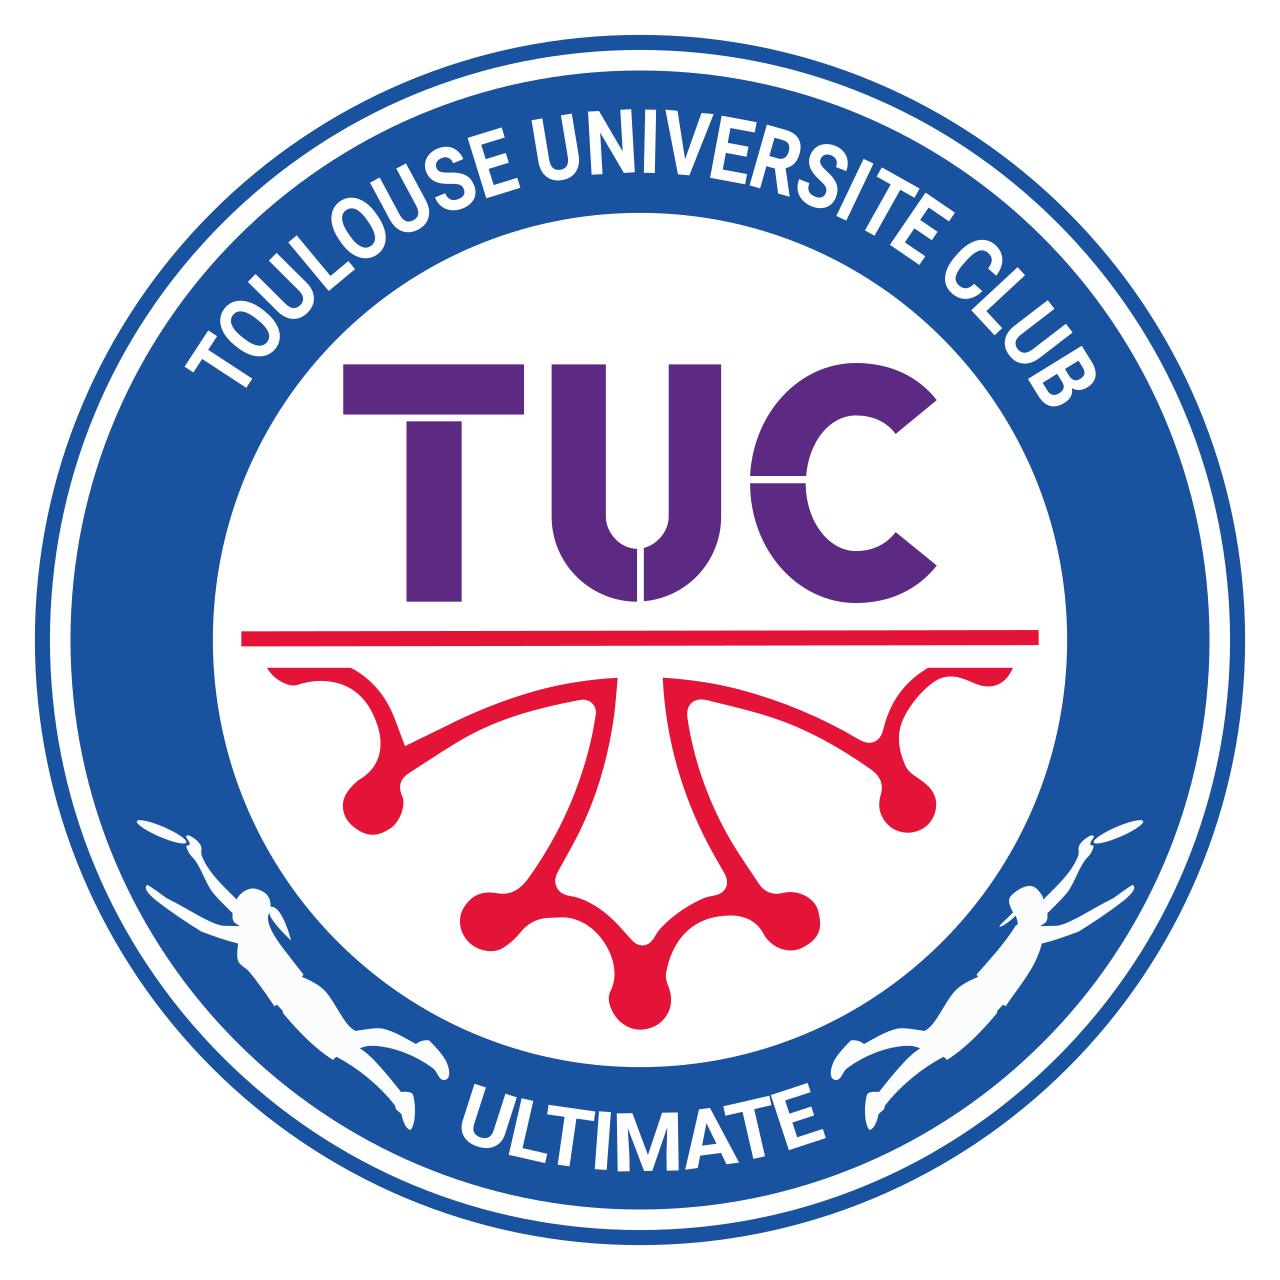 TUC ULTIMATE TOULOUSE